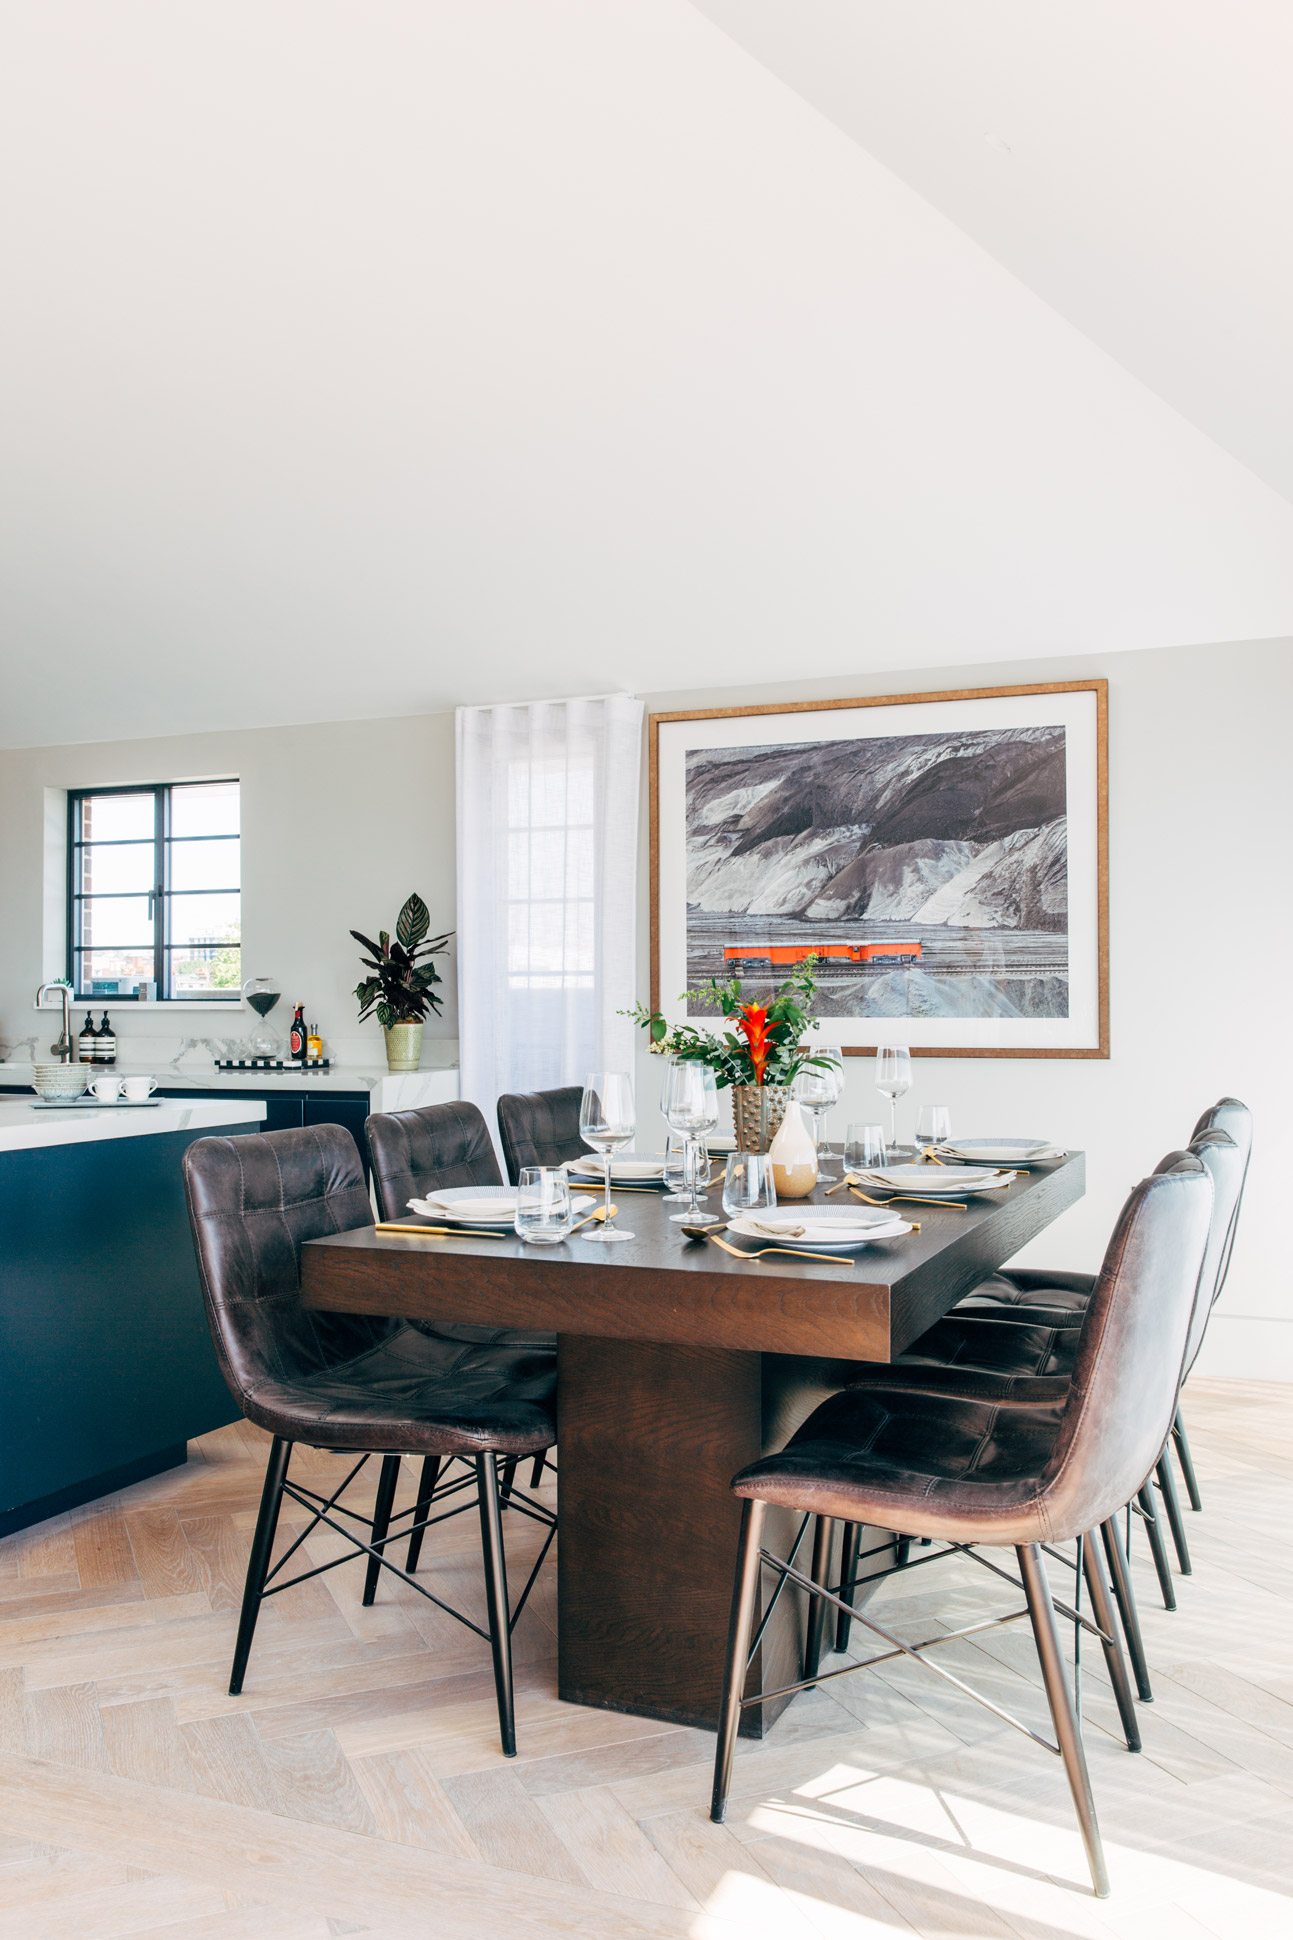 A_LONDON_Hamilton_Court_1_04_Dining_Room_Kitchen_Living_Room.jpg